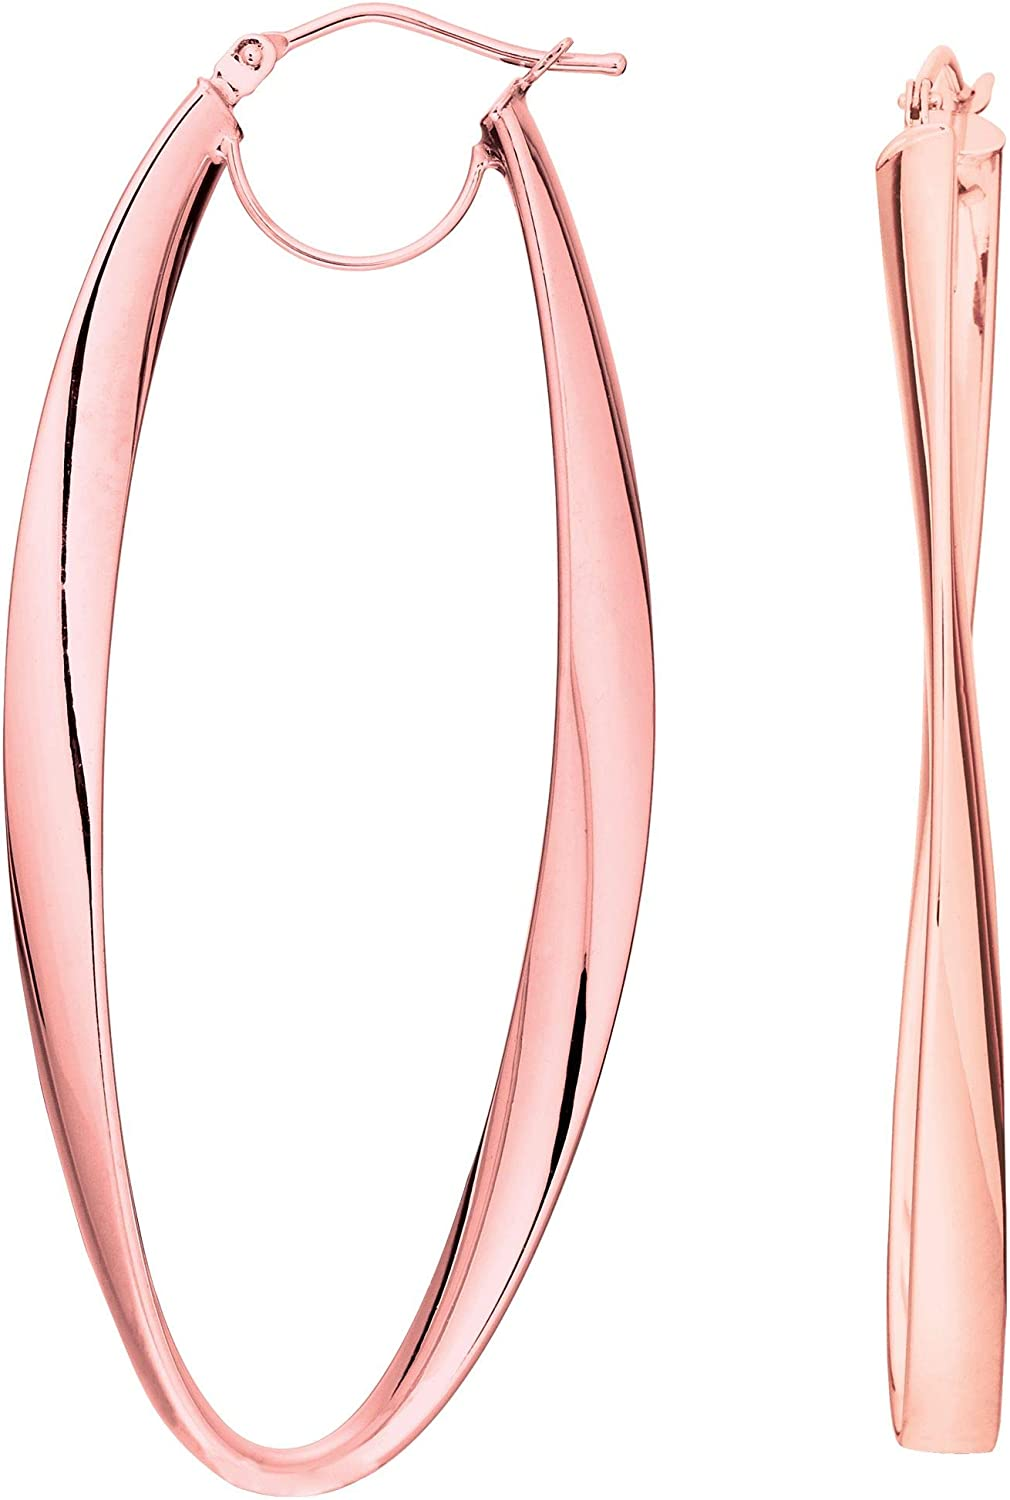 14K Yellow White or Rose Gold Shiny Long Oval Freeform Hoop Earrings with Hinged by Icedtime